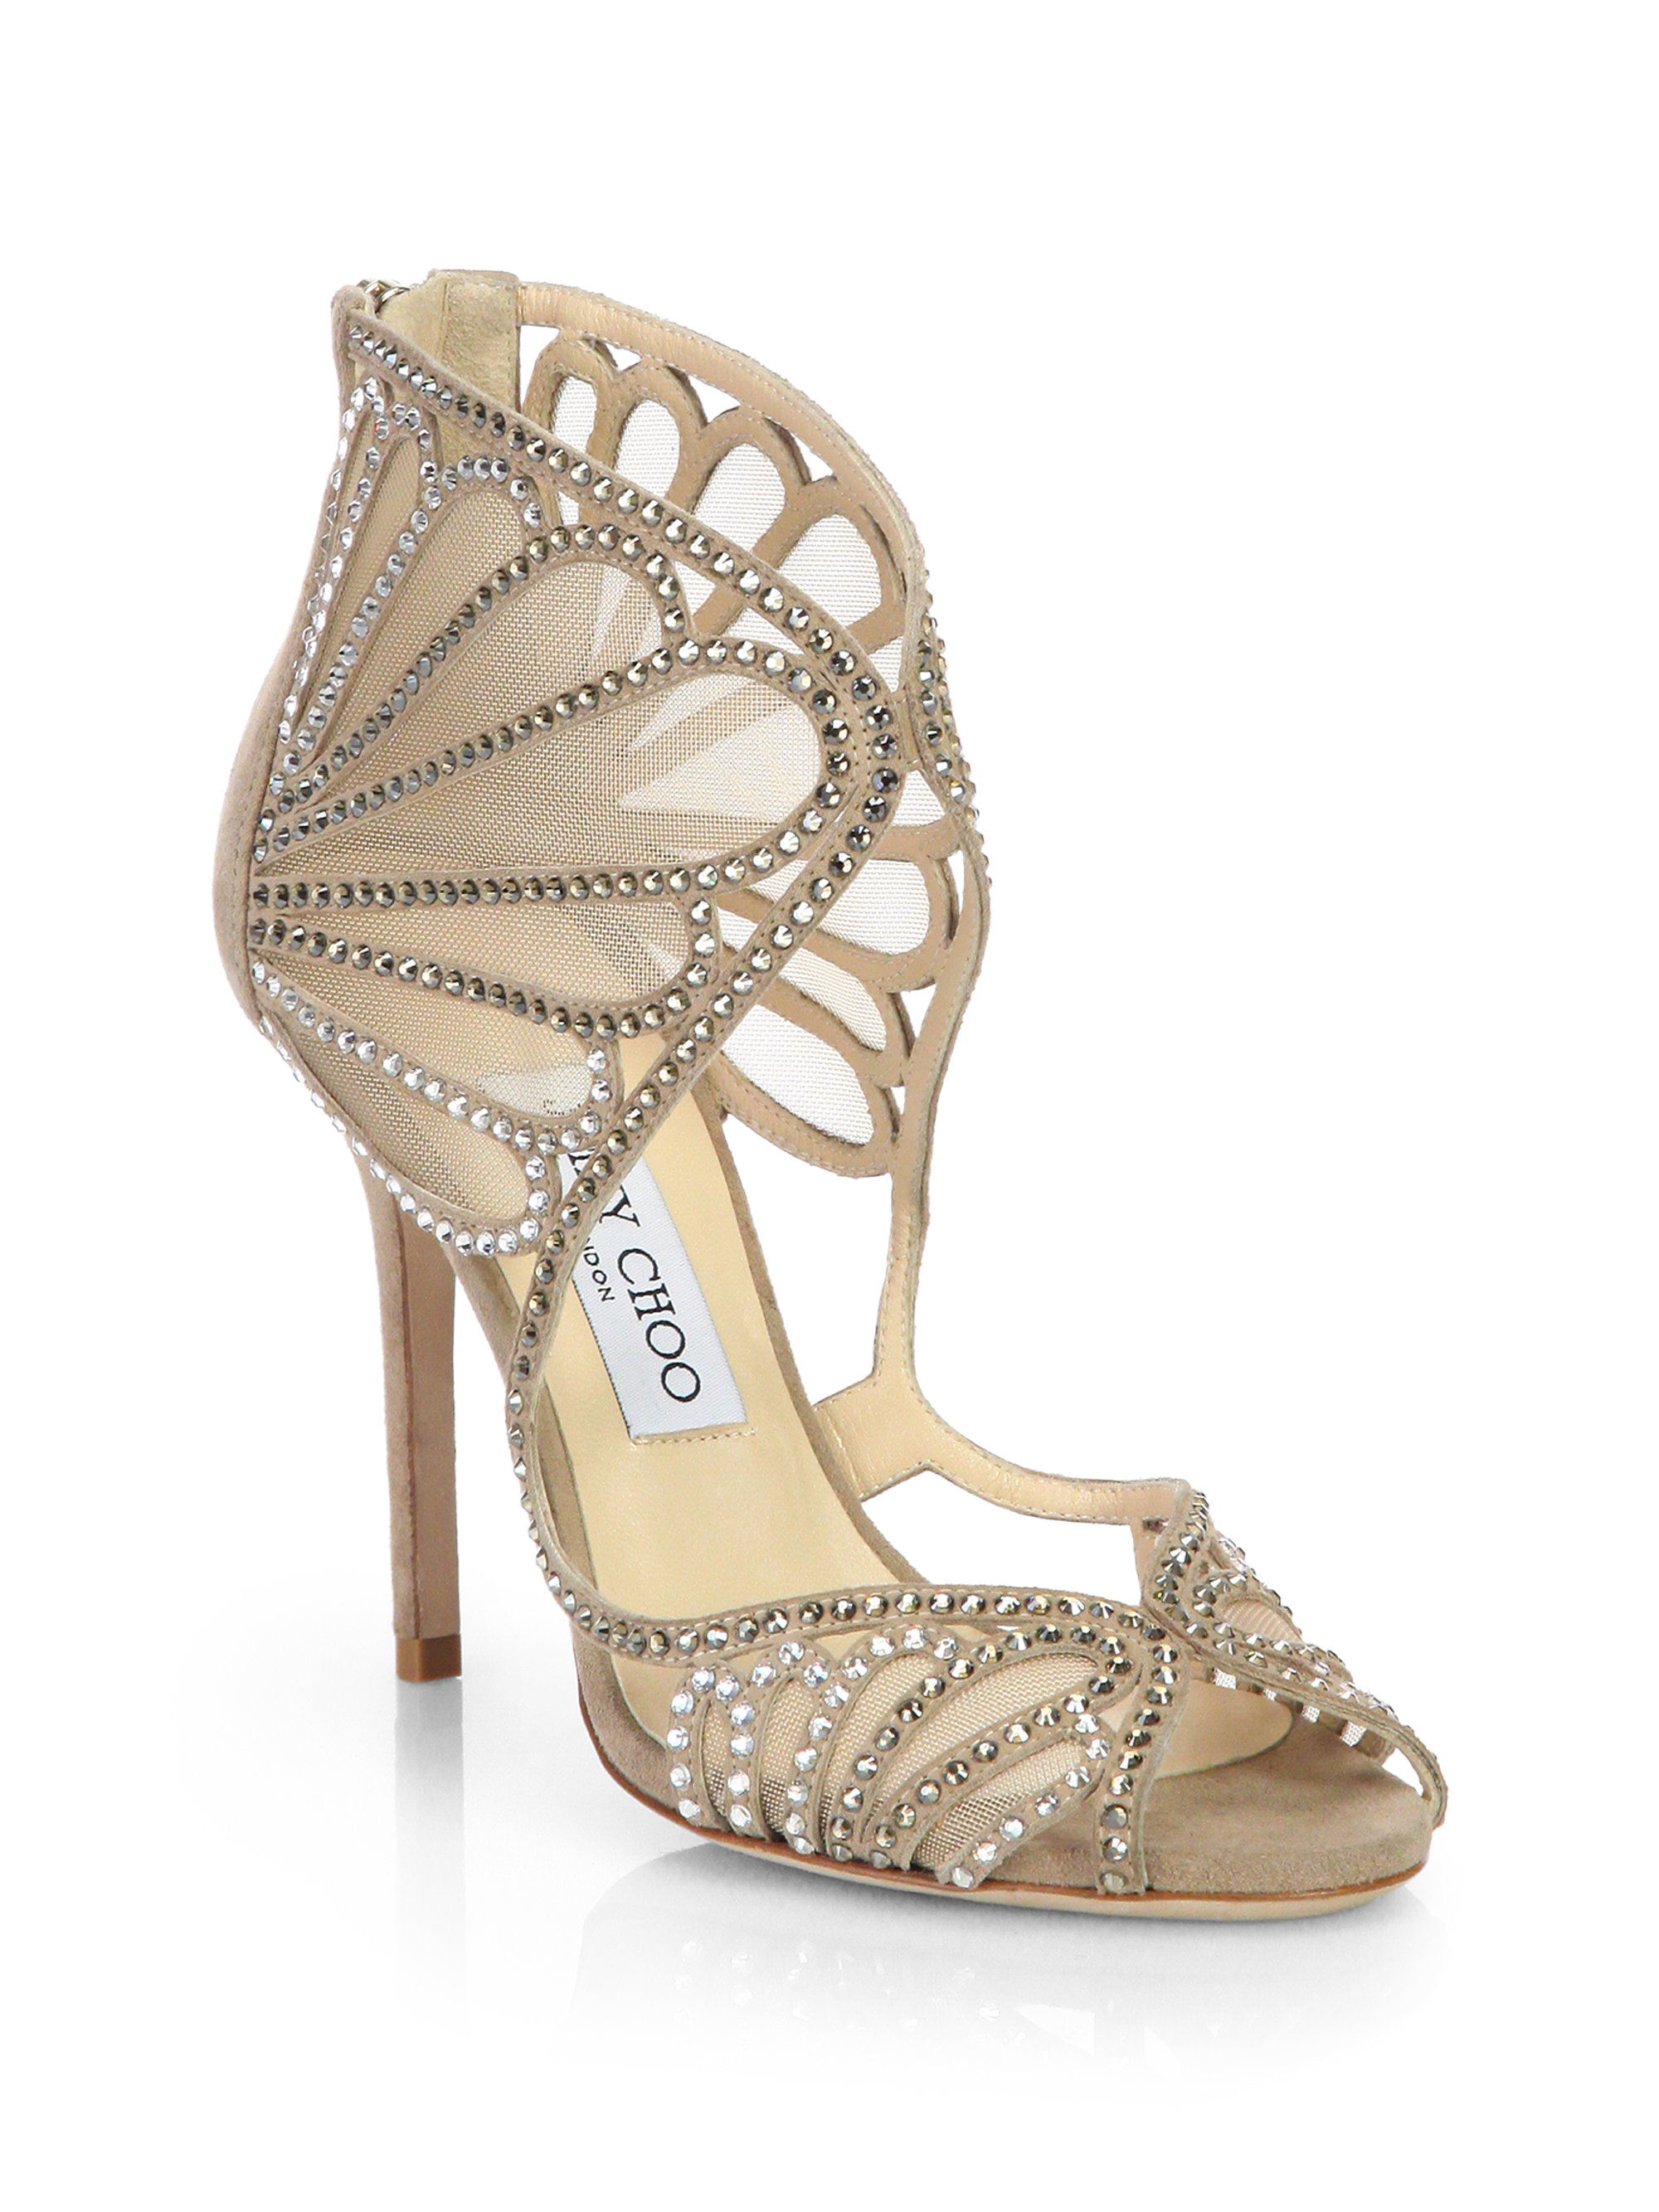 jimmy choo beige fitch sandals pre order jimmy choo wedding shoes You can pre order this style at Nordstrom for just over yes they are pricey but they are about as classic and elegant a heel as you are ever likely